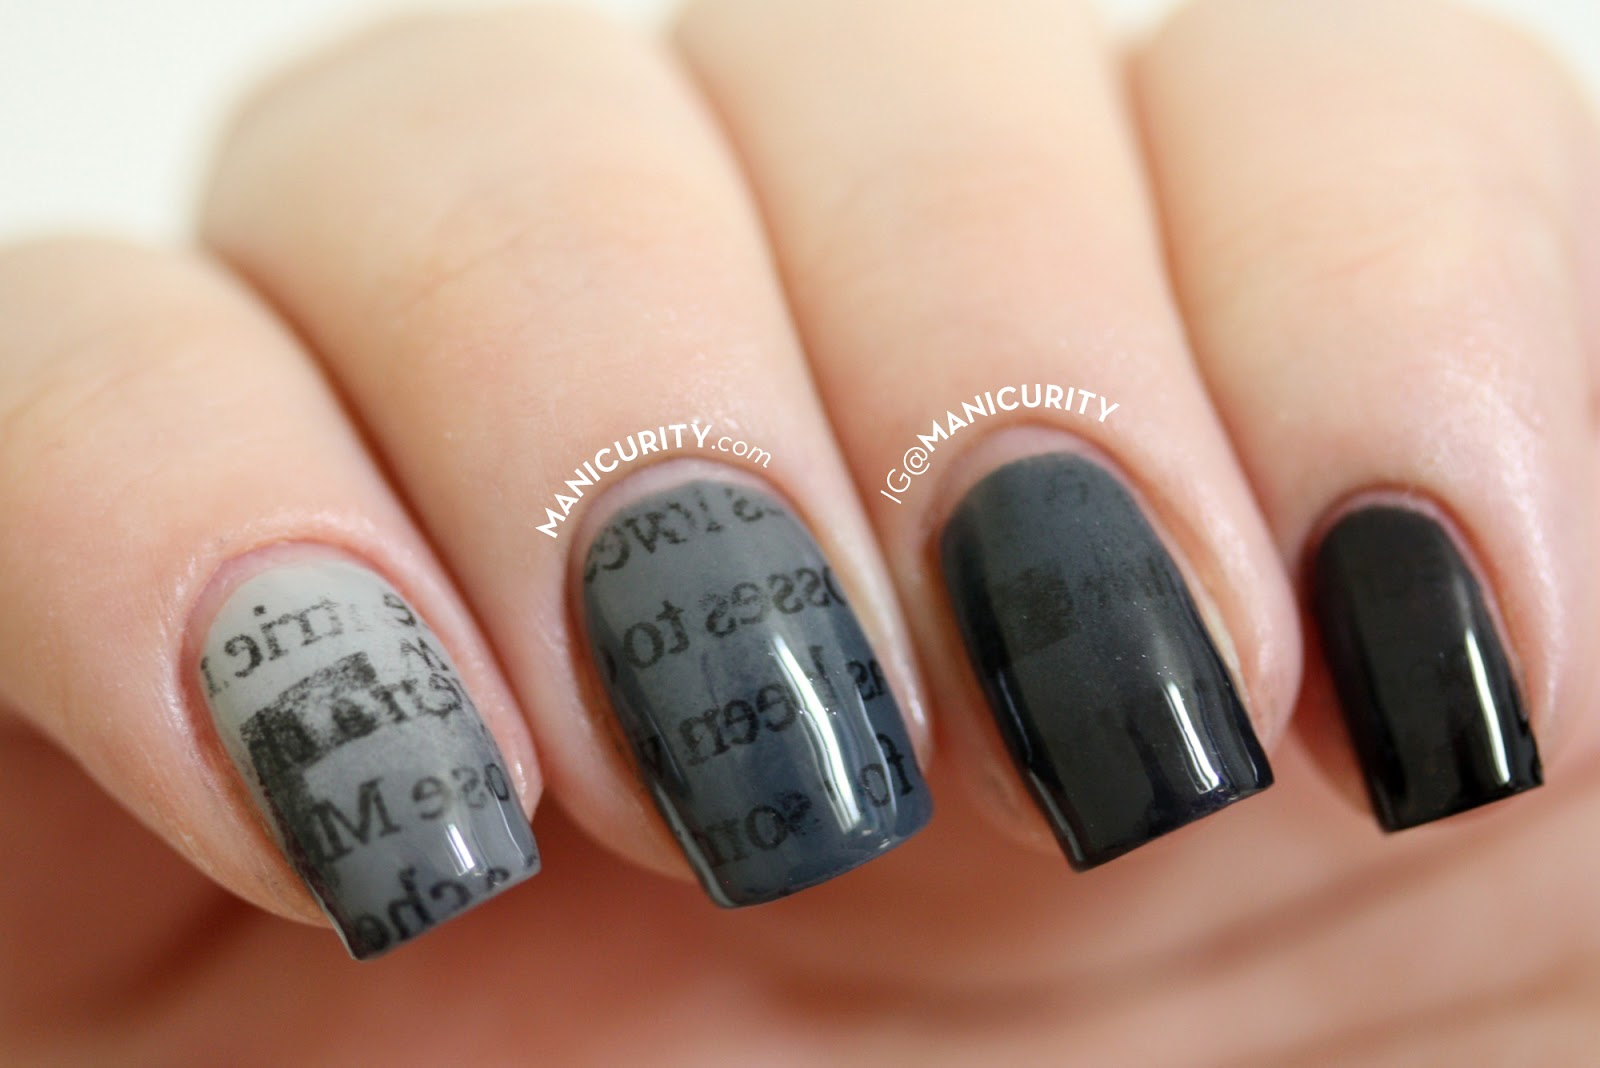 Manicurity | The Digit-al Dozen: Gradient Ombre Newsprint Nails - grey monochrome gradient ombre newspaper print nail art manicure